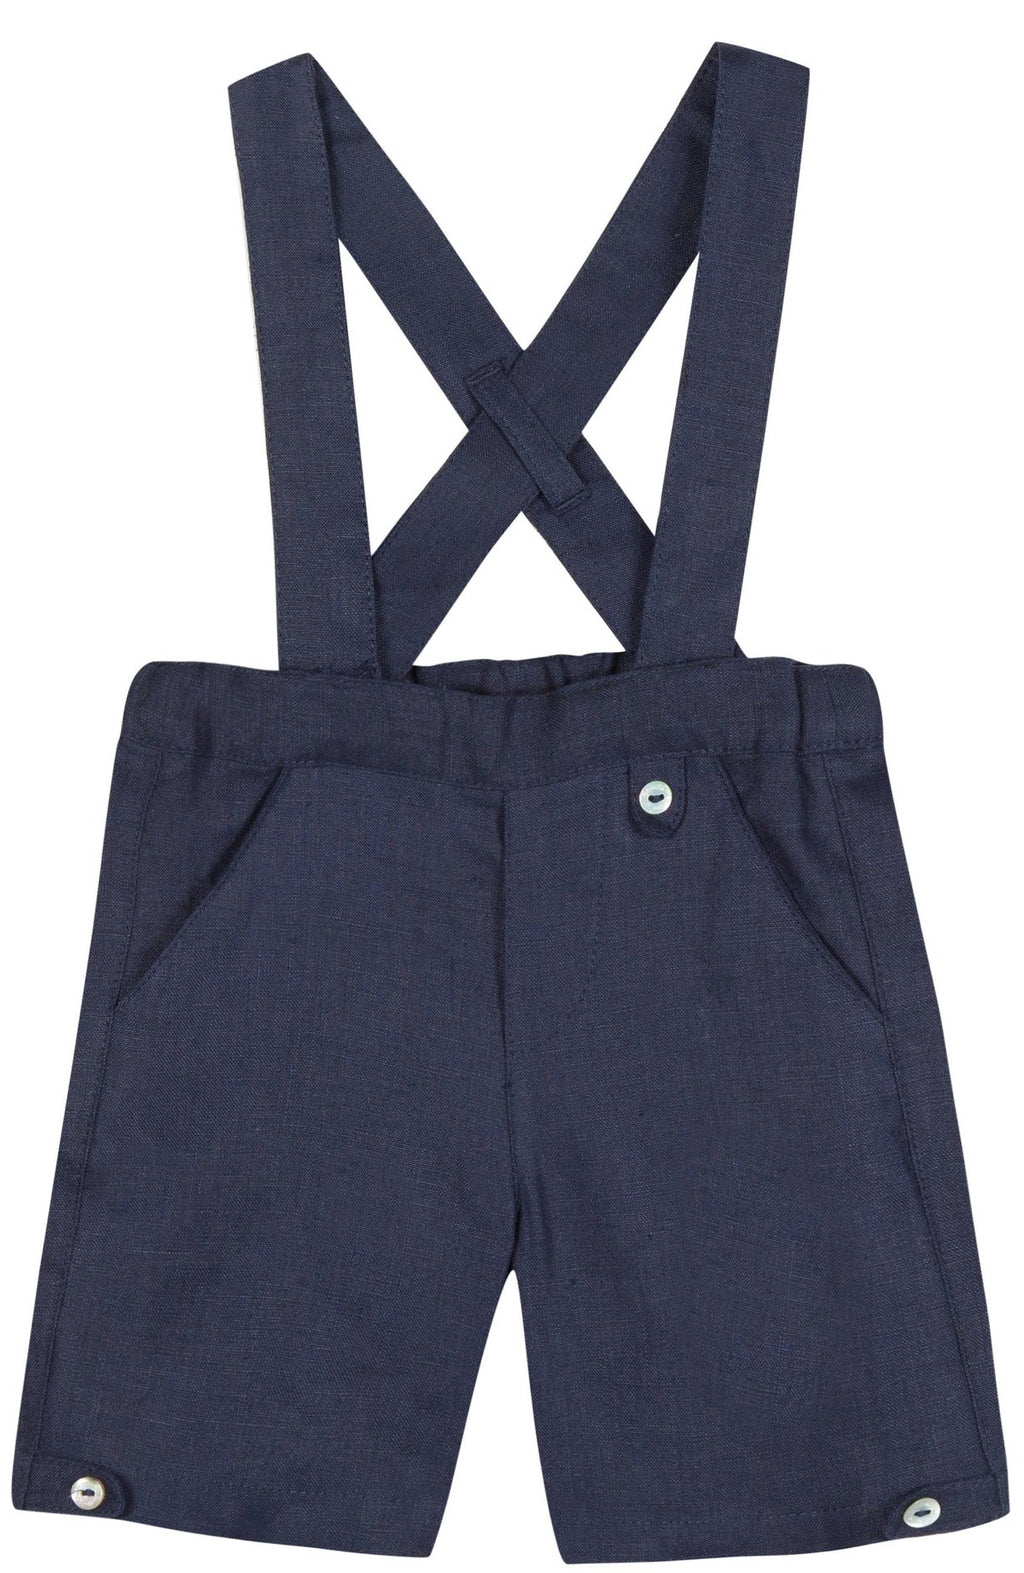 Tartine Pantalon14 Linen Suspender Pants